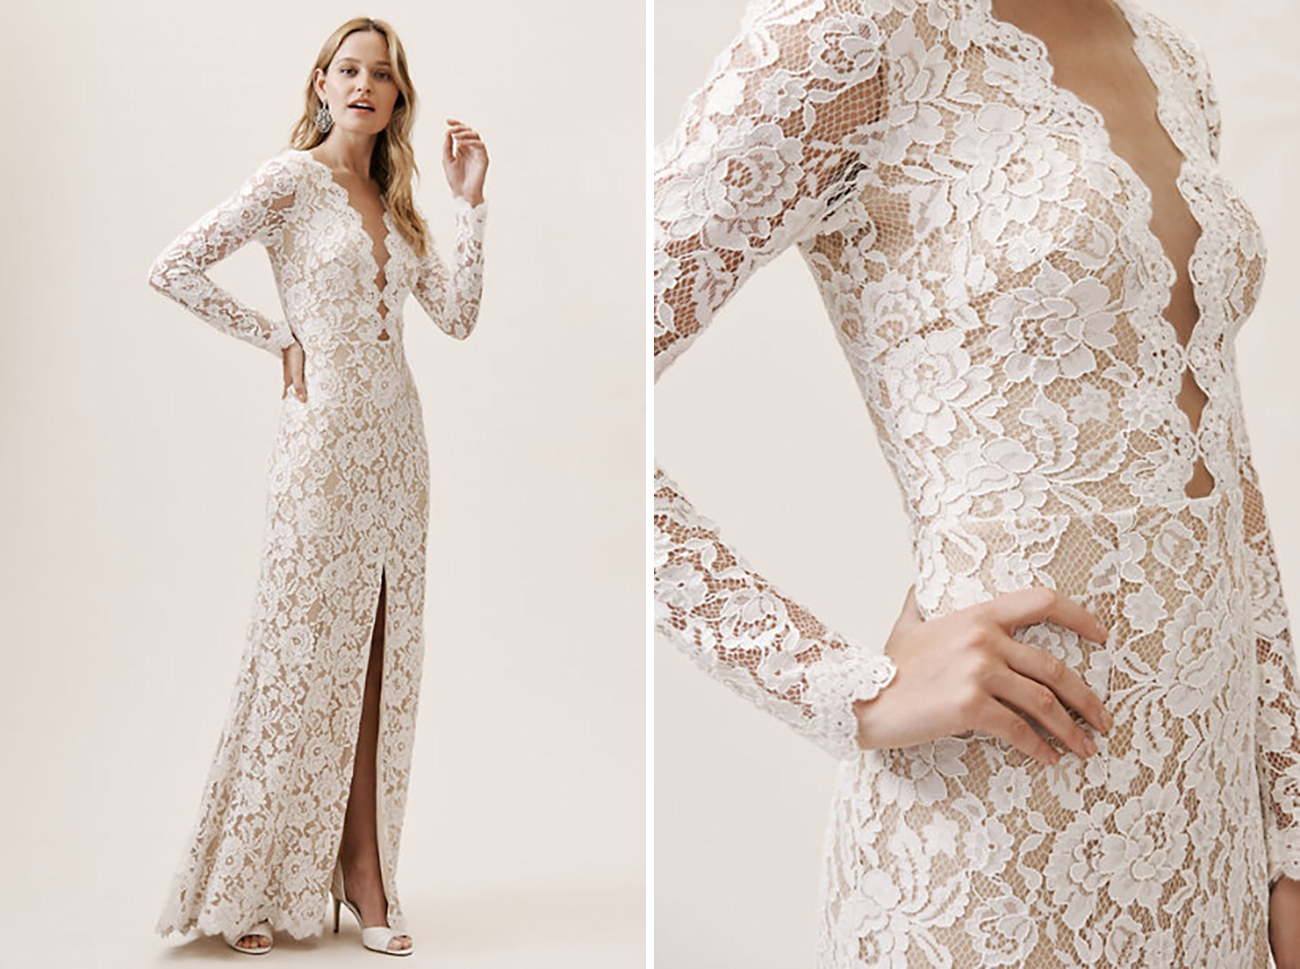 Beige Lace Bhldn Wedding Dress Or Bridesmaid Gown: Our 15 Favorite Wedding Dresses Under $800!